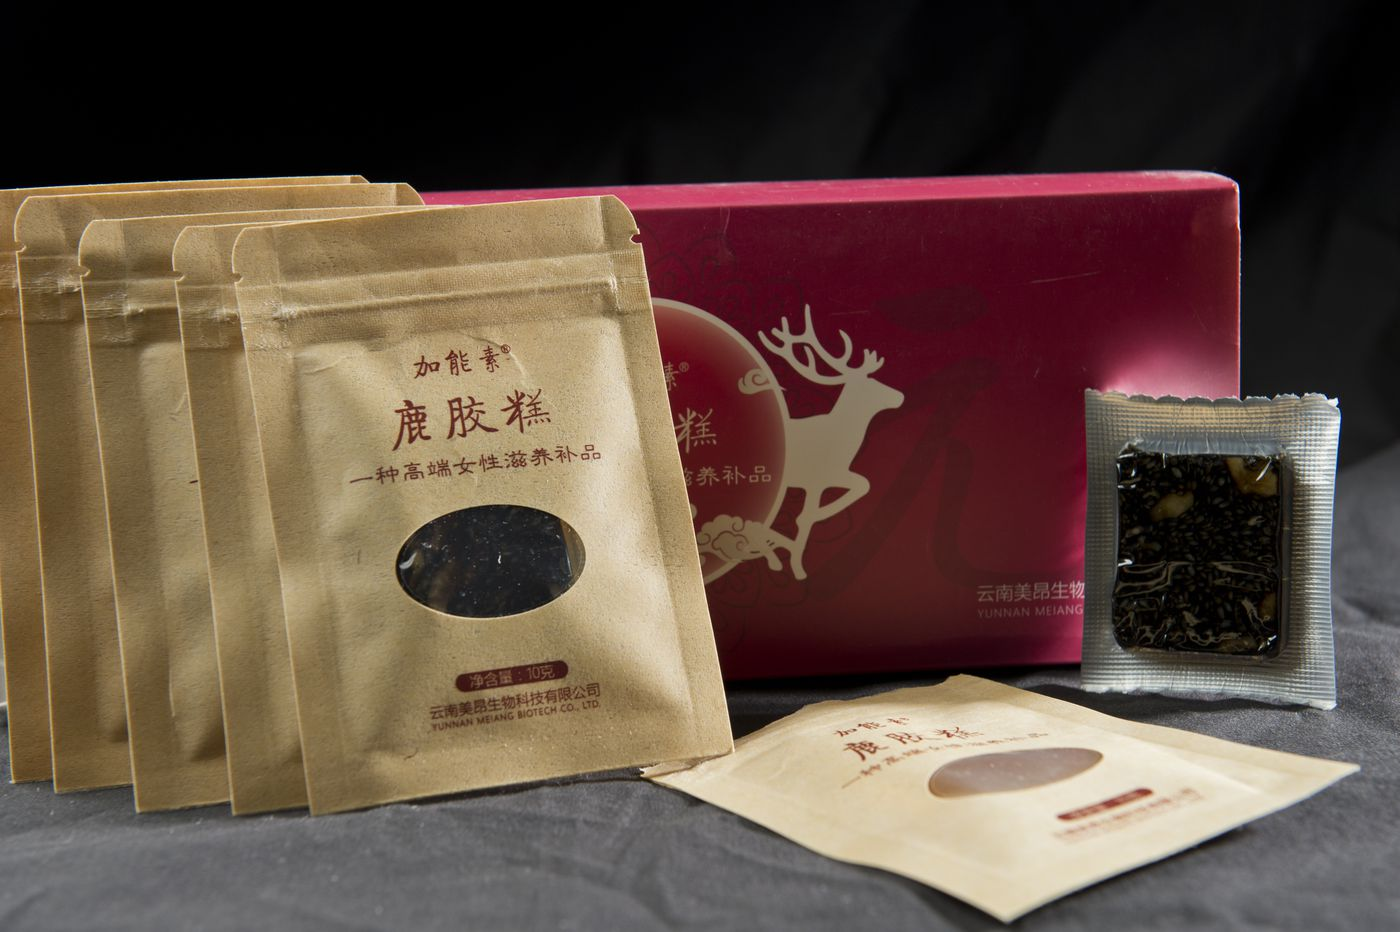 Andrews said this nutritional supplement was detained because it includes a deer ingredient. Andrews said it will be released to its intended recipient because his office wasn't able to determine if it was a protected species of deer. (Marc Lester/ ADN)